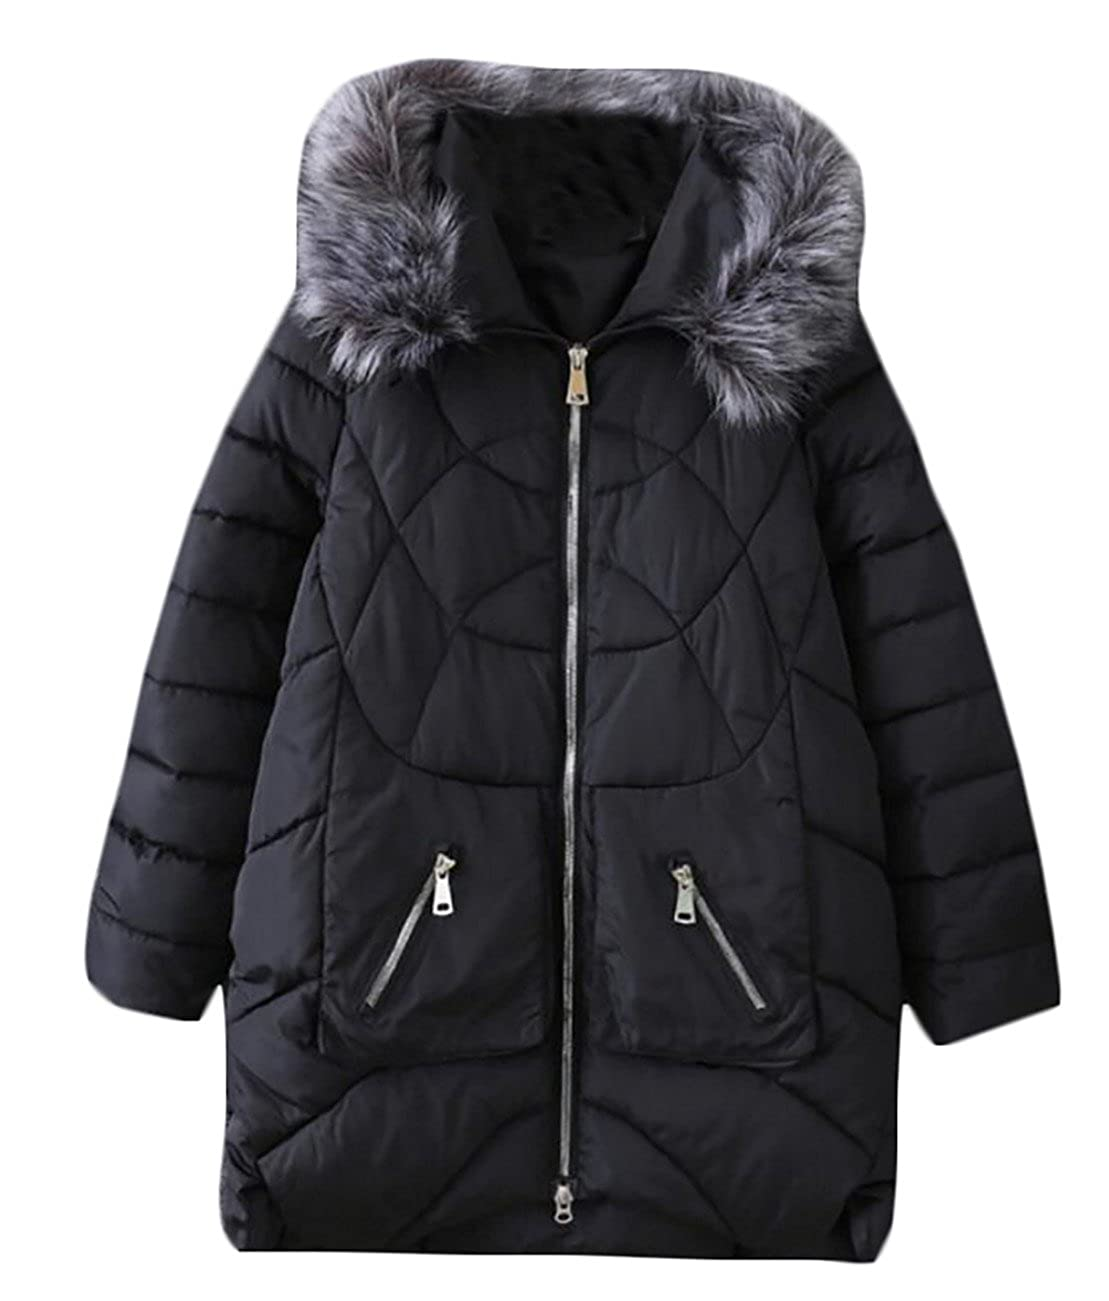 KLJR-Women Outwear Faux Fur Collar Hoodie Quilted Cotton Jacket Coat